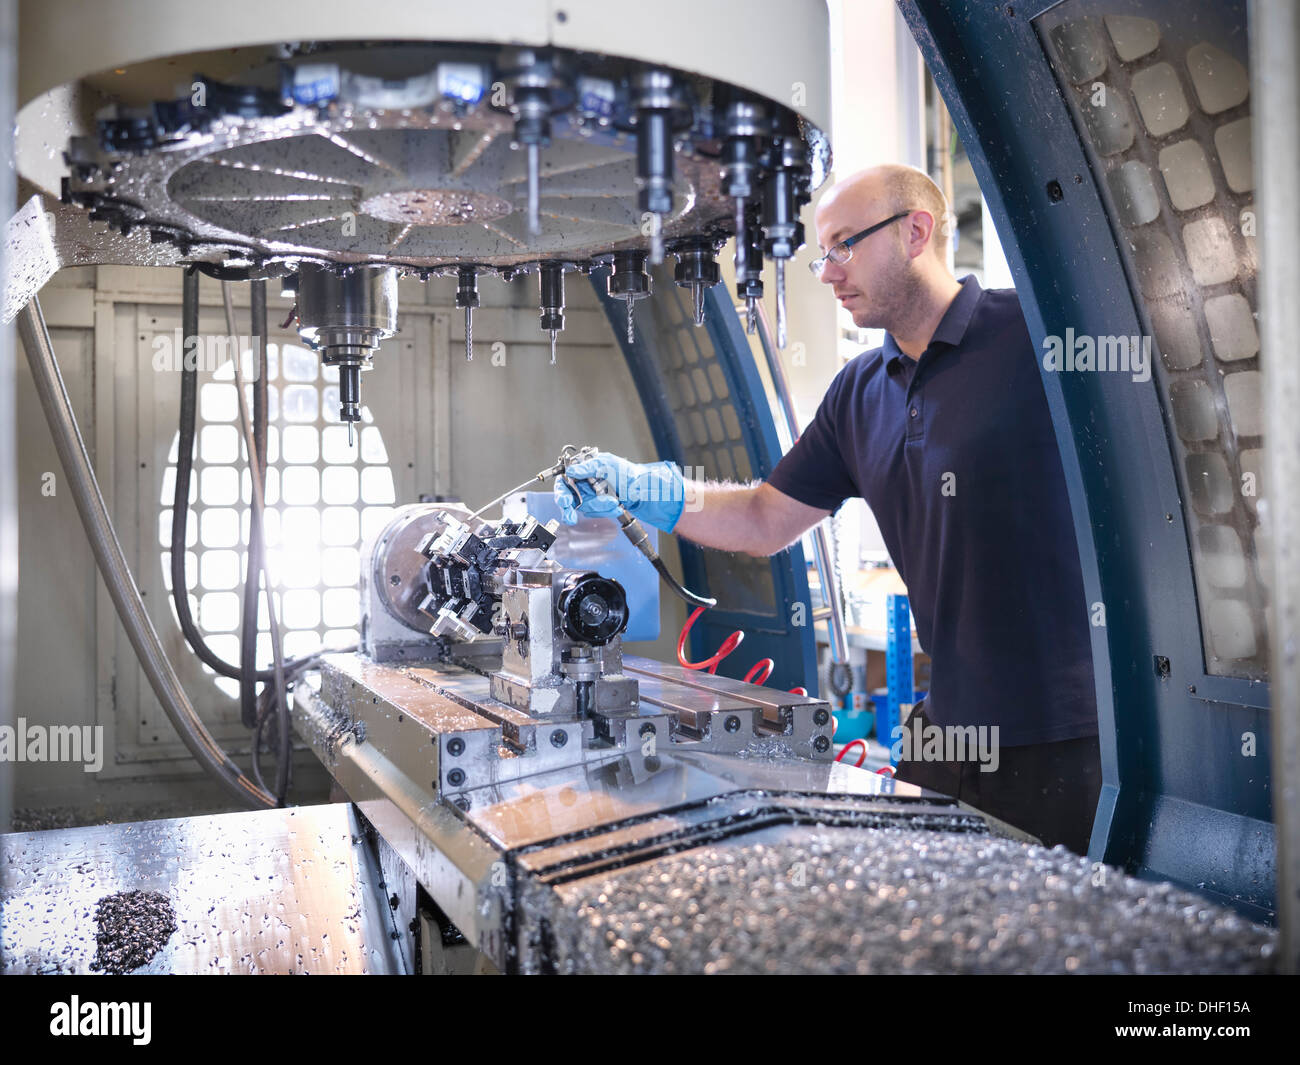 Engineer cleaning computer numerical controlled (CNC) lathe in factory - Stock Image